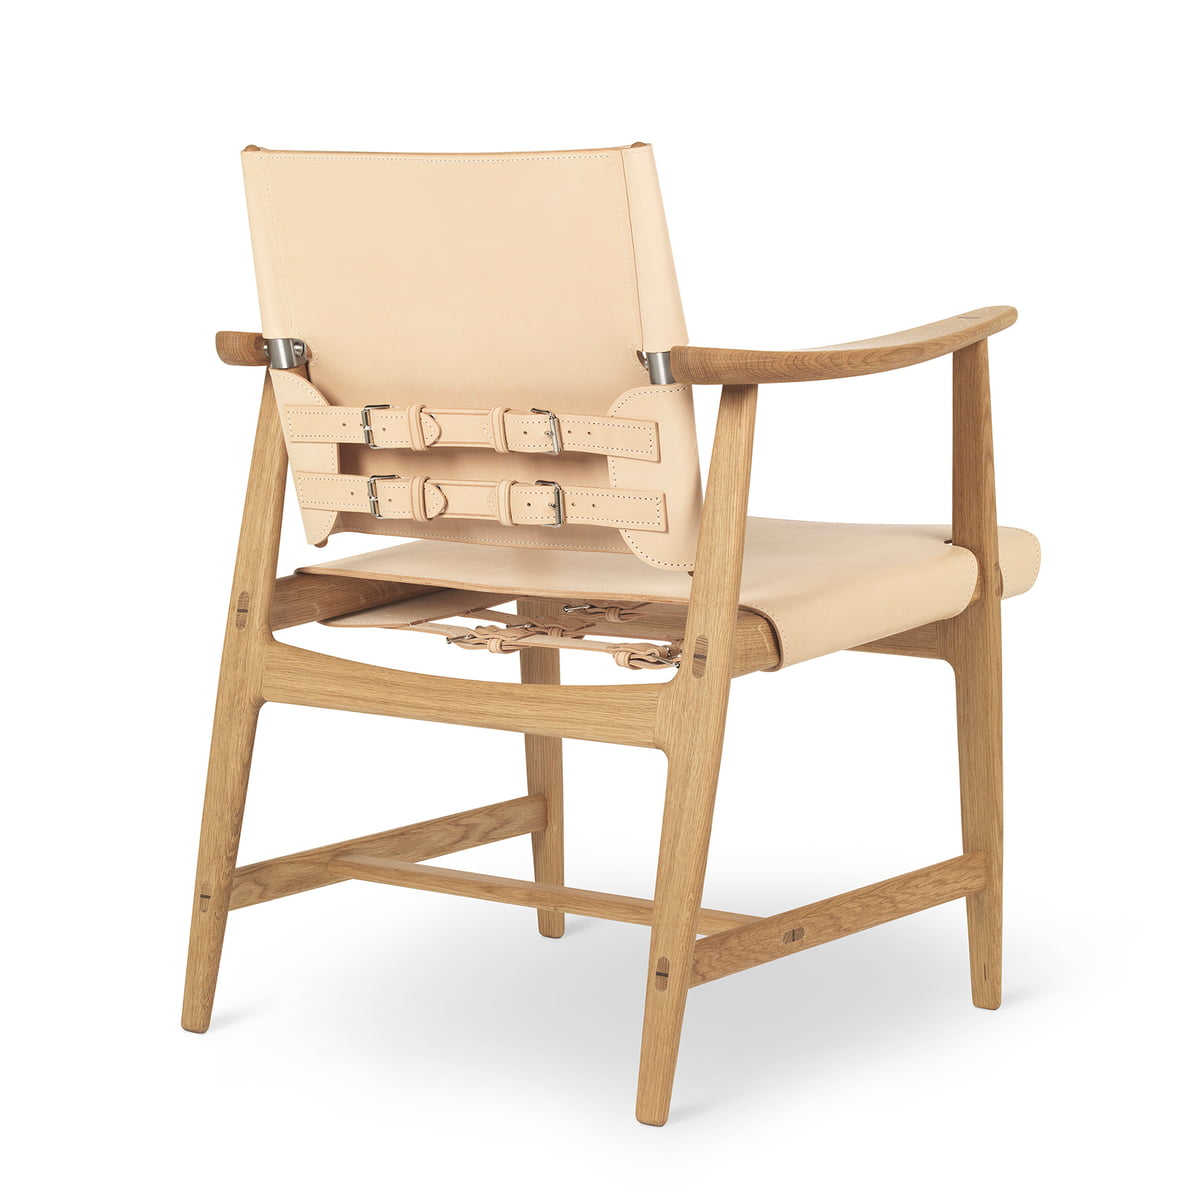 Admirable Carl Hansen Bm1160 Huntsman Chair Oak Oiled Natural Saddle Leather Stainless Steel Fittings Evergreenethics Interior Chair Design Evergreenethicsorg